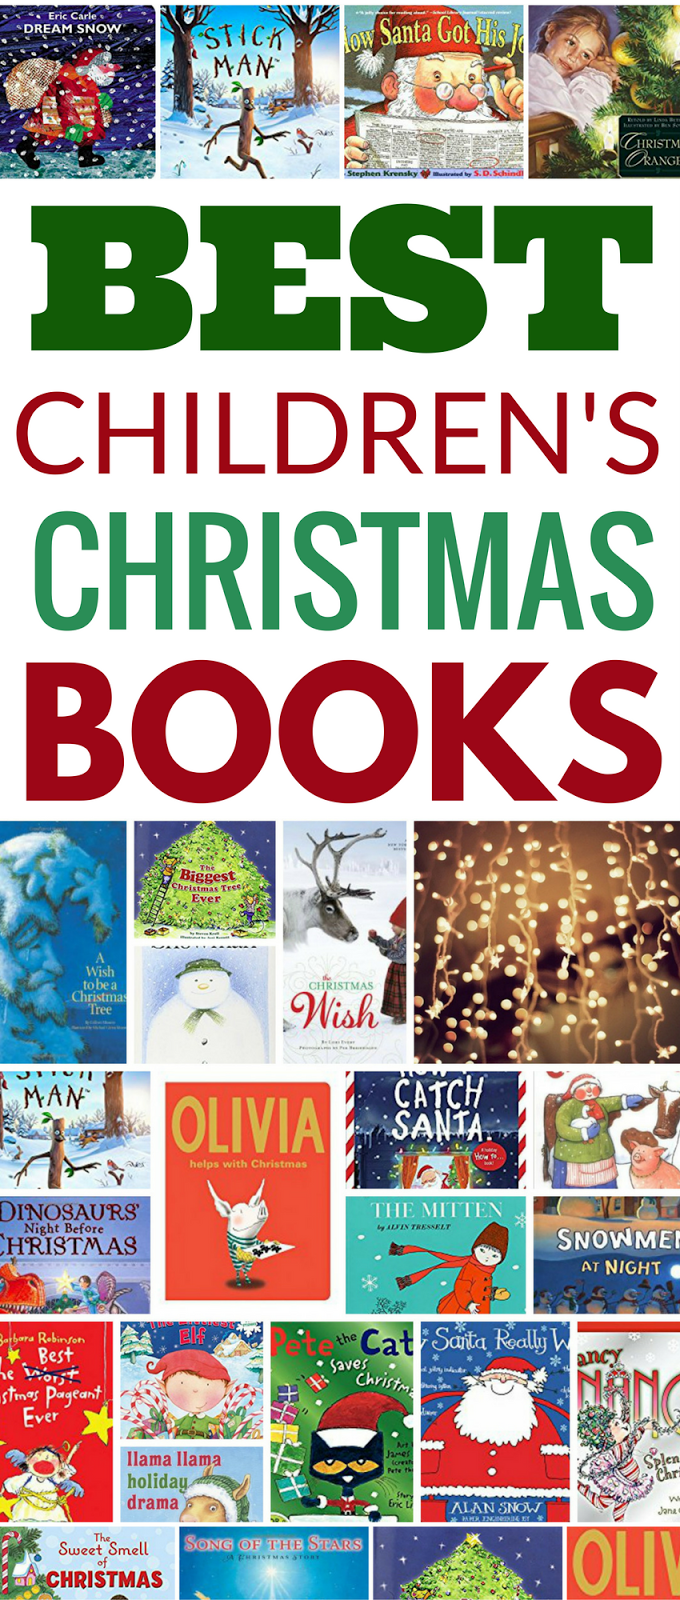 favorite christmas stories, popular christmas story books, best christmas books, children books, Christmas stories for kids